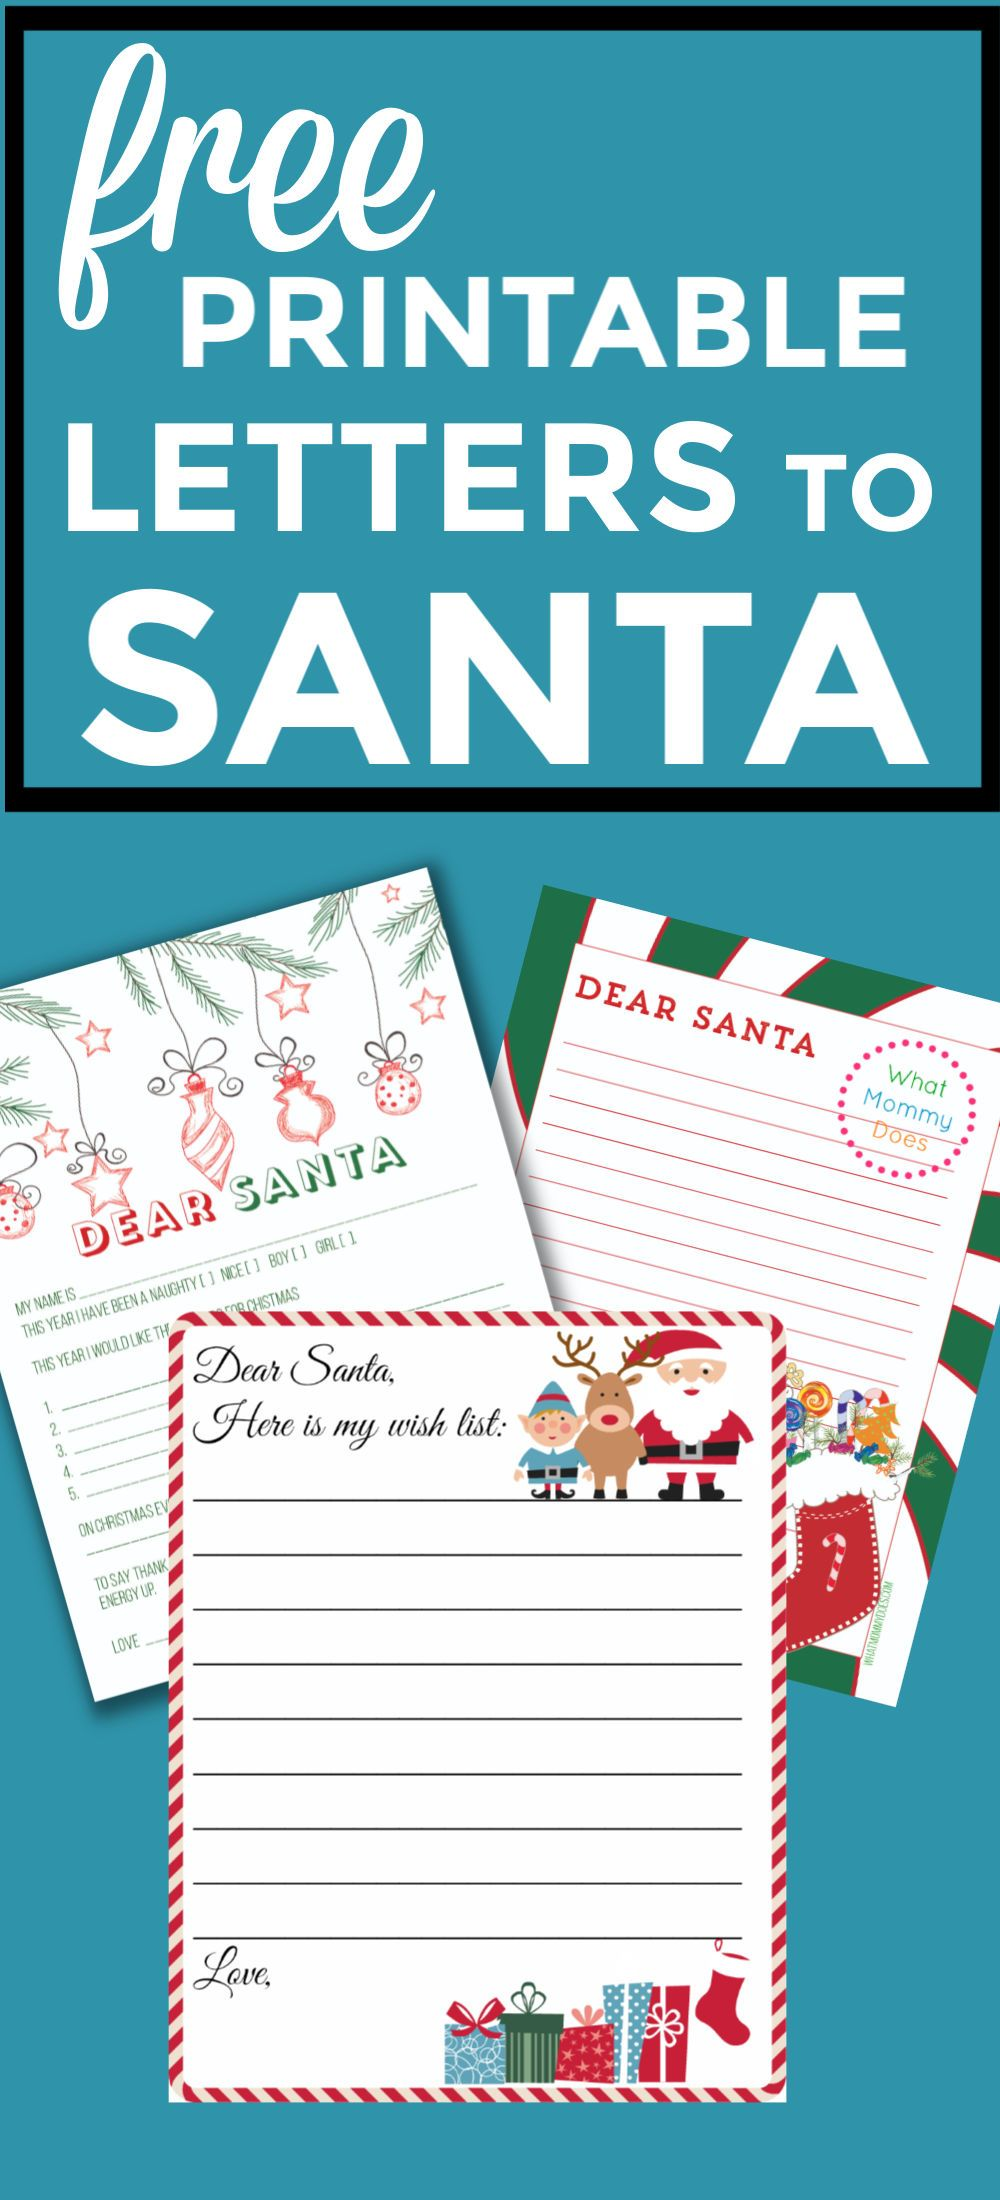 Free Santa Letter Templates + How to Mail a Letter to